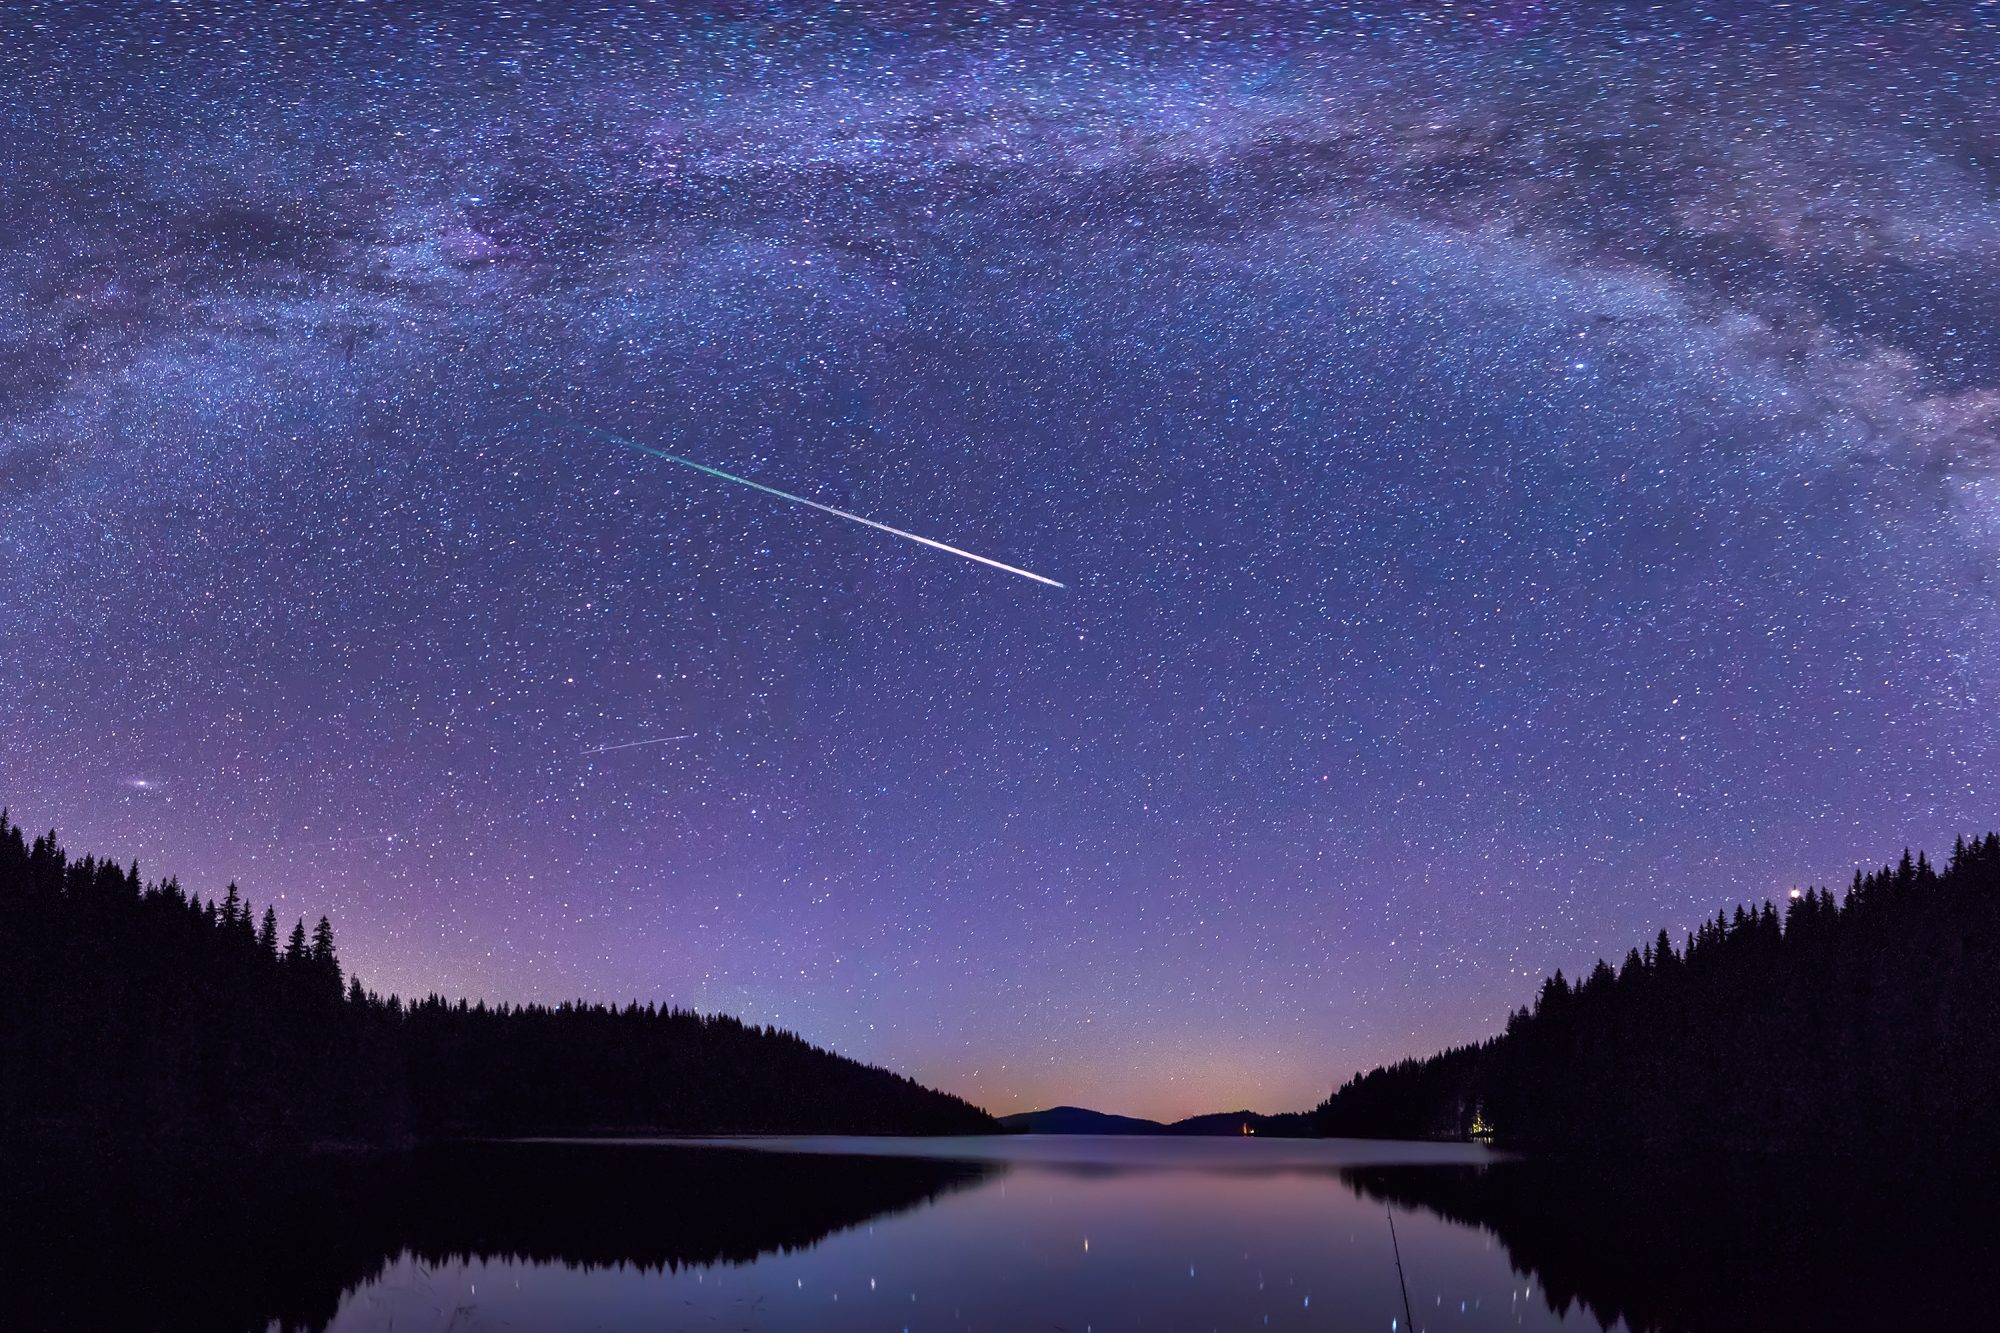 Fall 2021 stargazing events: meteor shower